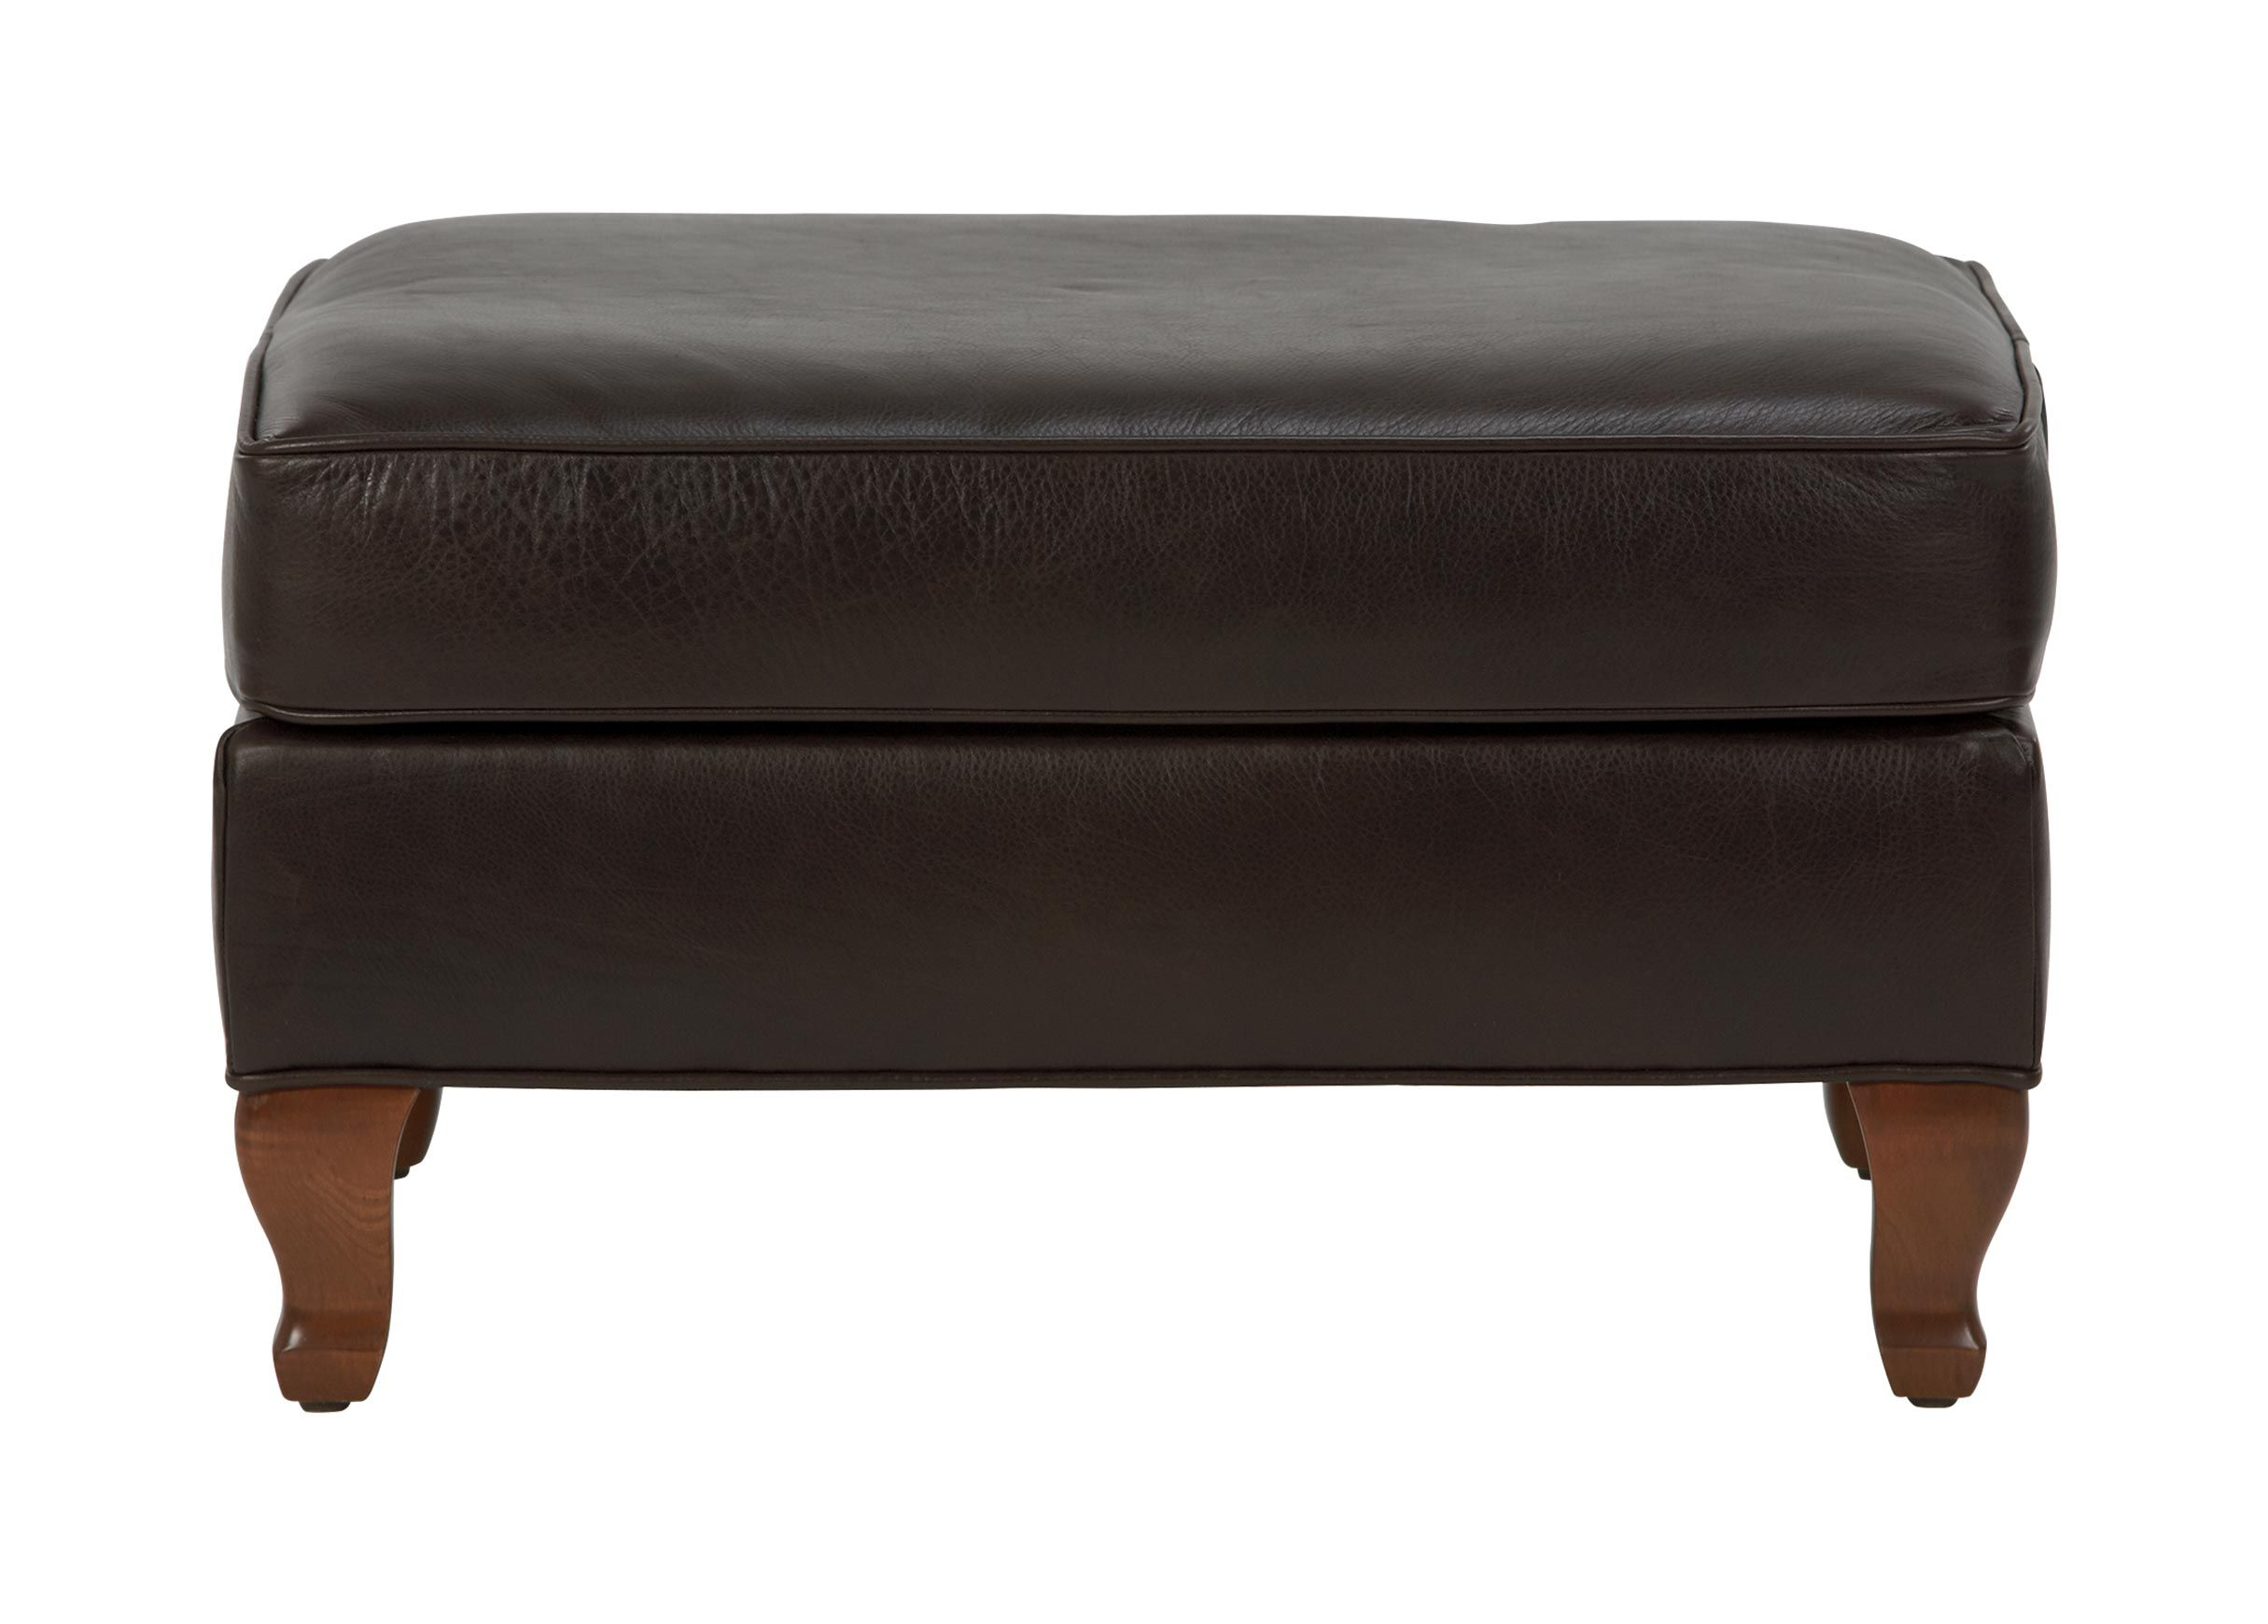 Avery Leather Ottoman - Ottomans & Benches - Ethan Allen